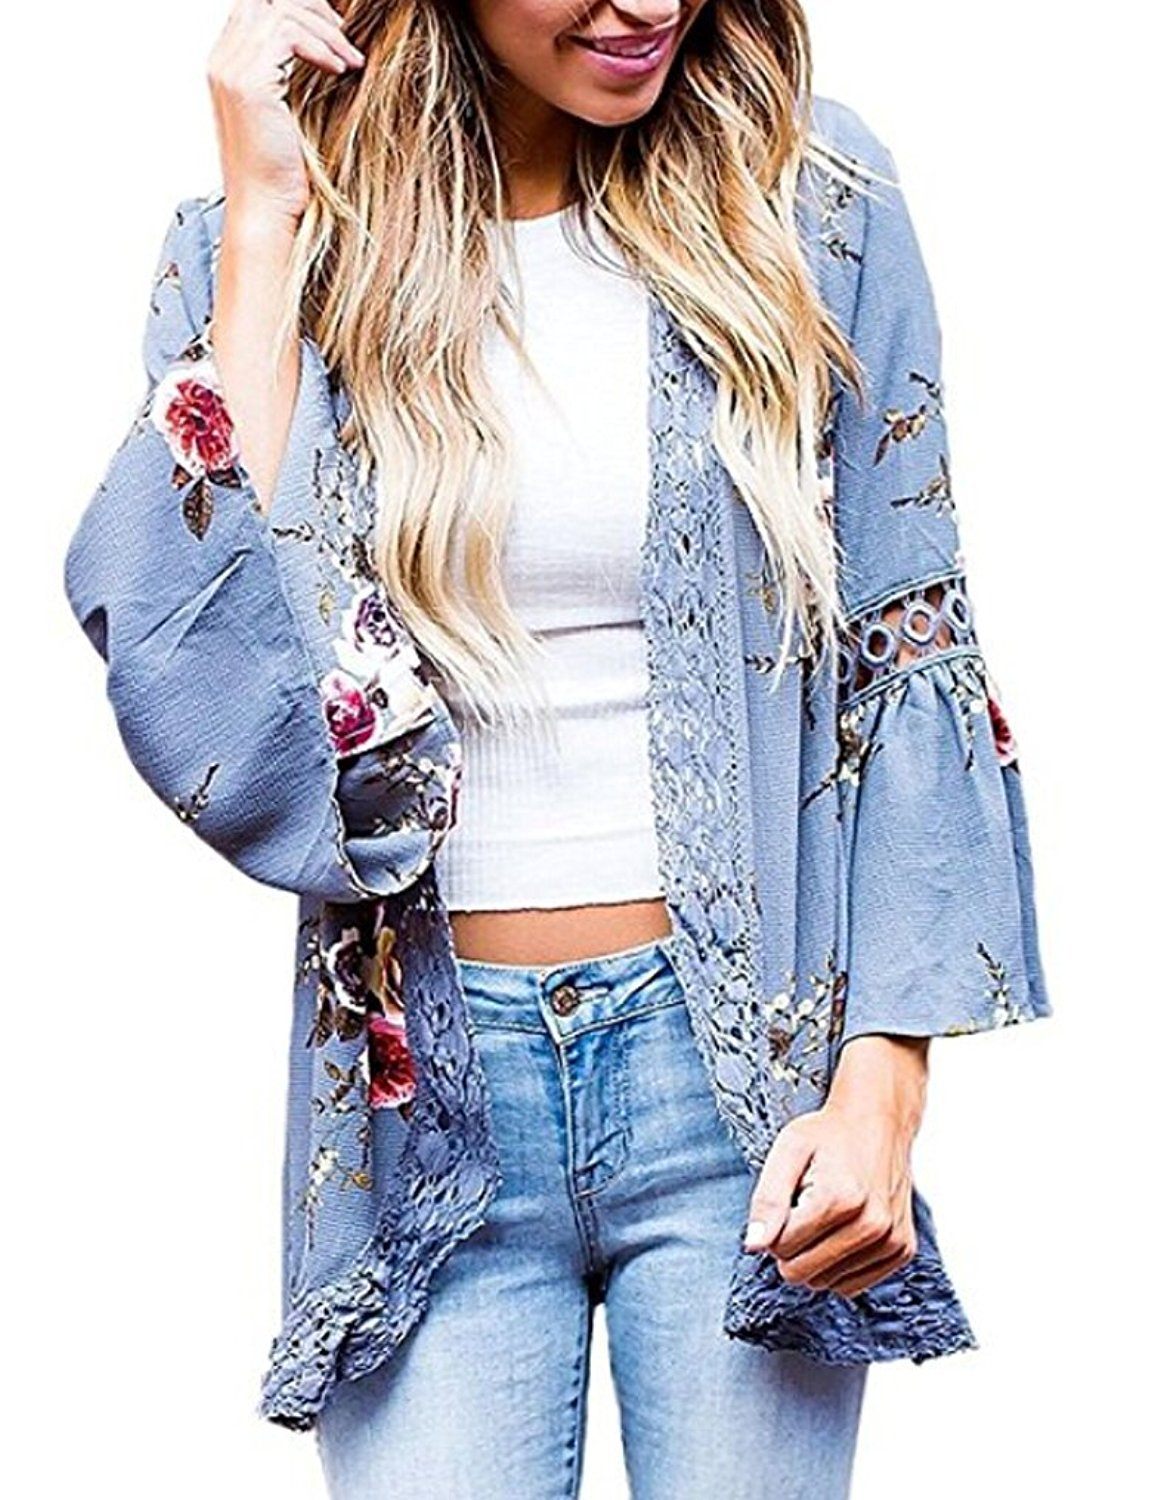 Basic Faith Women's Boho Floral Print Kimono Tops Trumpet Sleeve Cover up Cardigans Blue XL